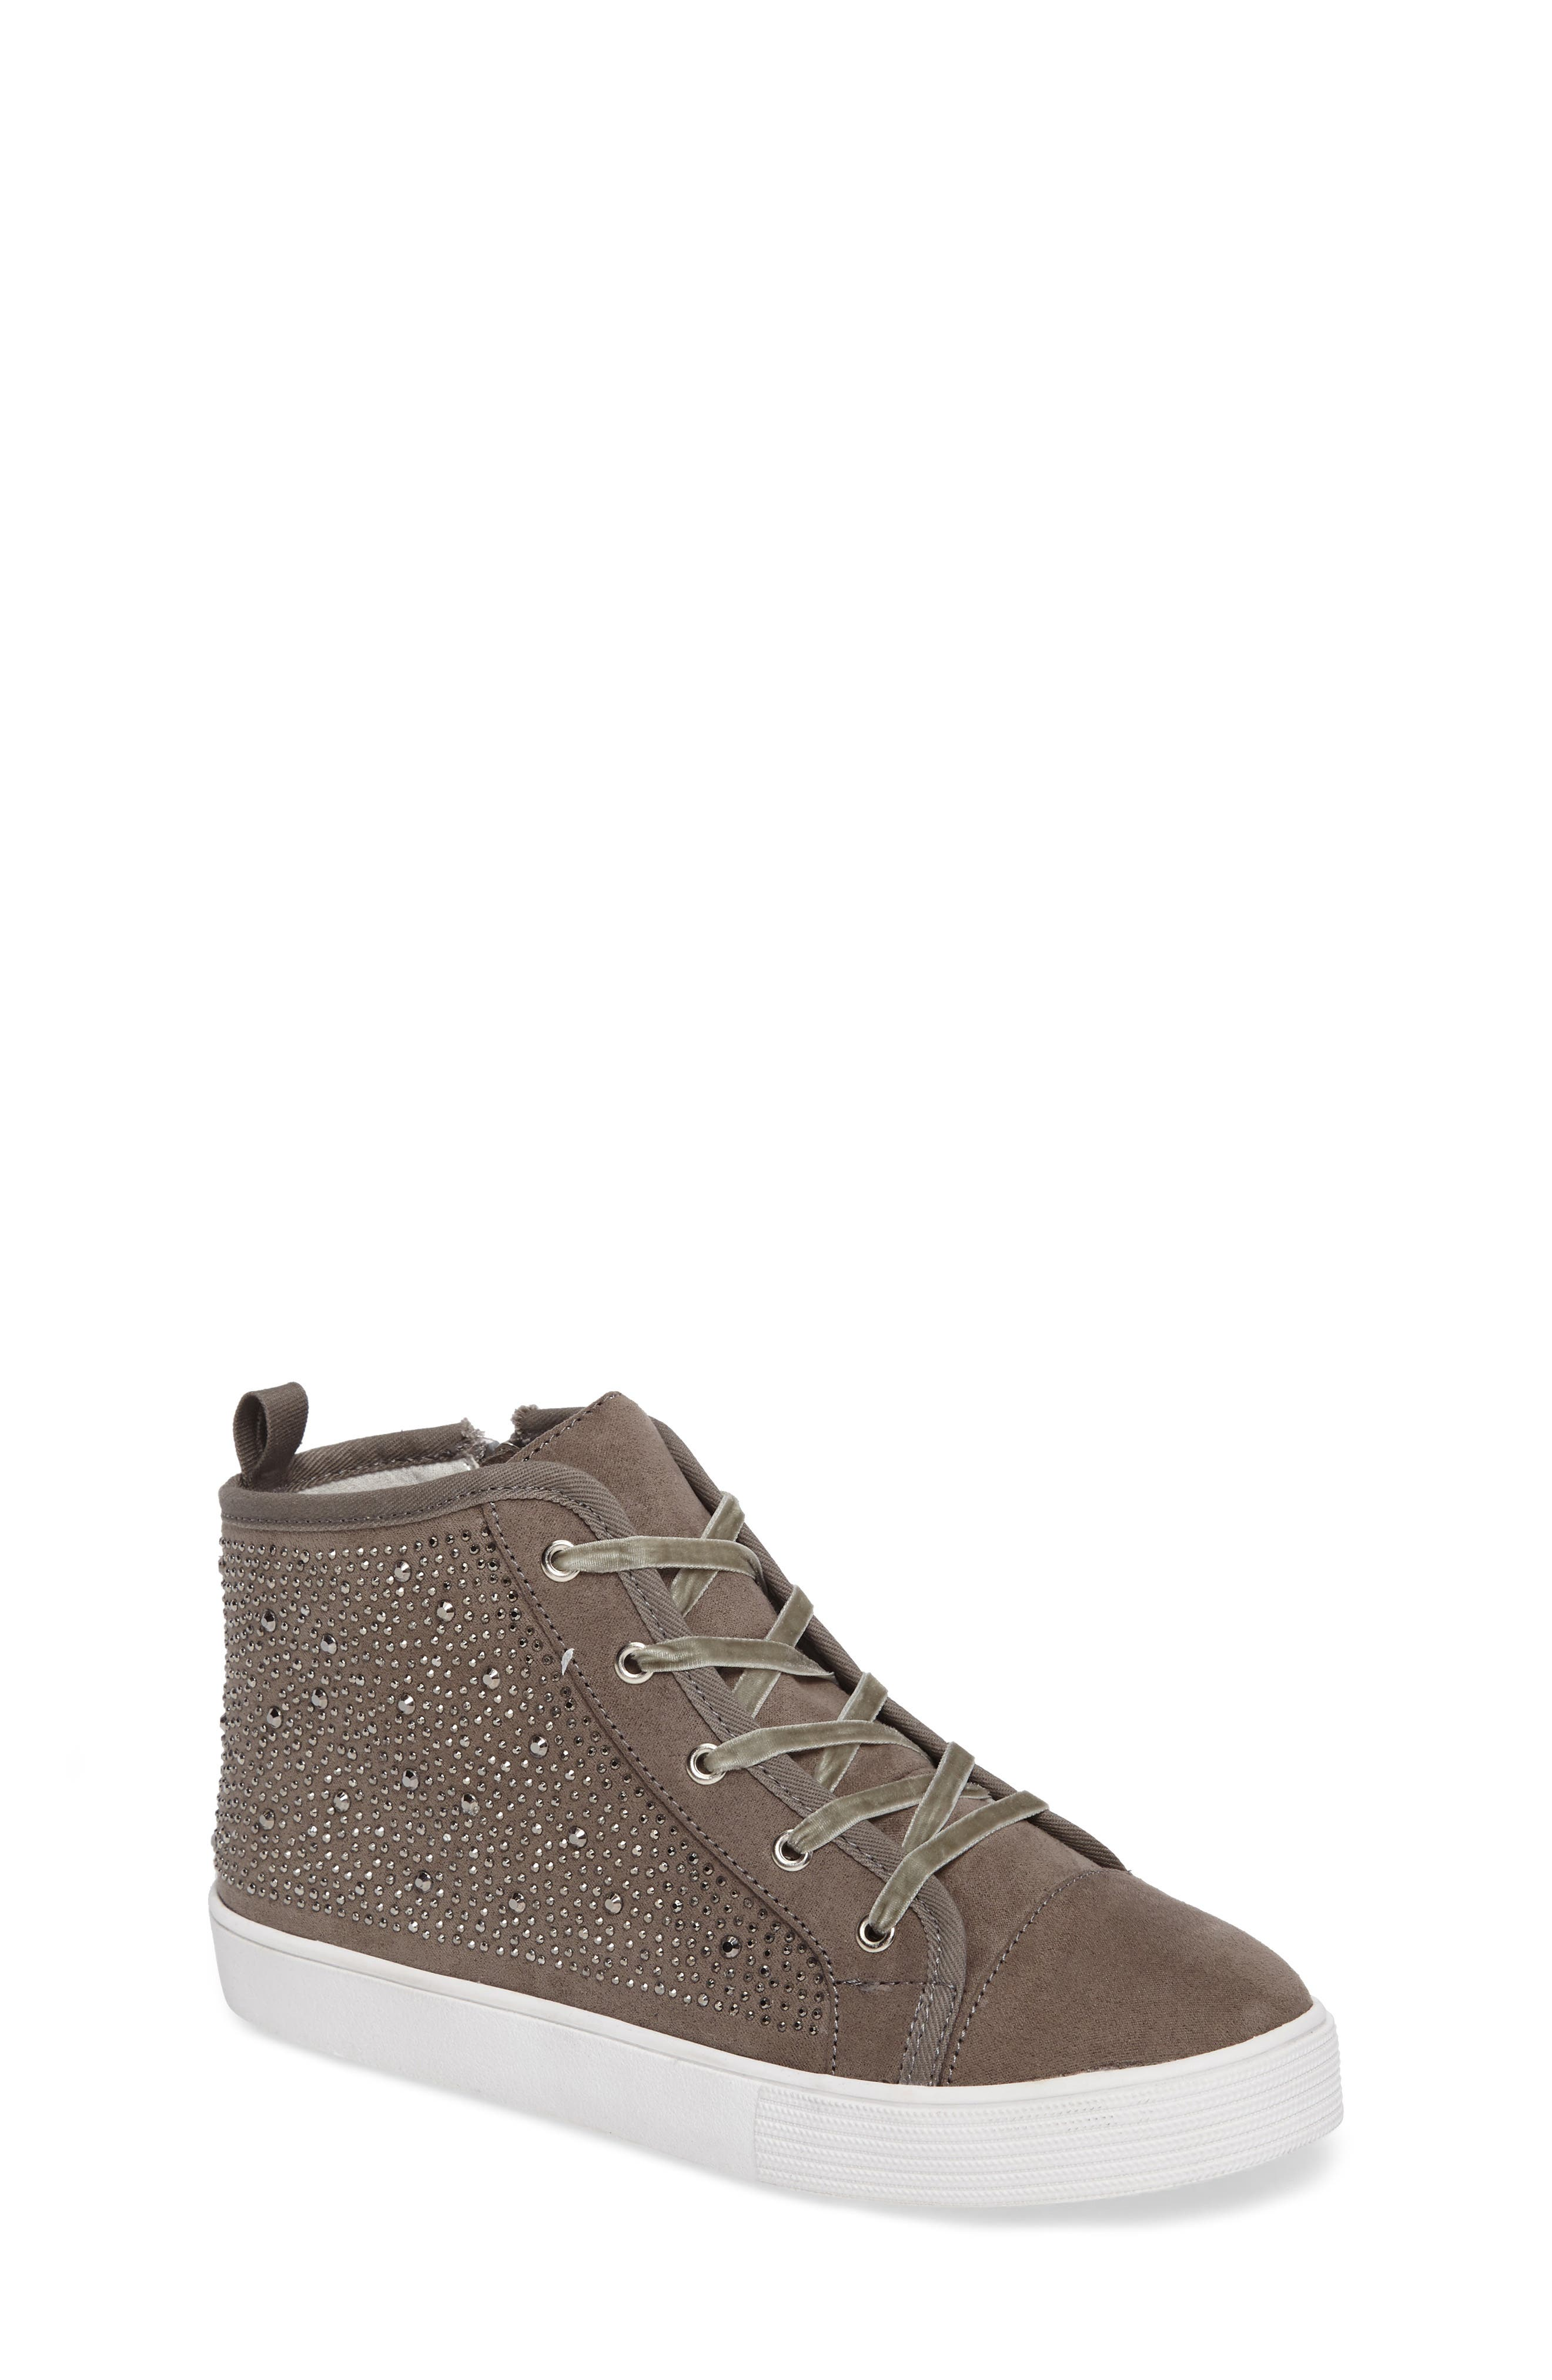 Vance Embellished High Top Sneaker,                             Main thumbnail 1, color,                             Pewter